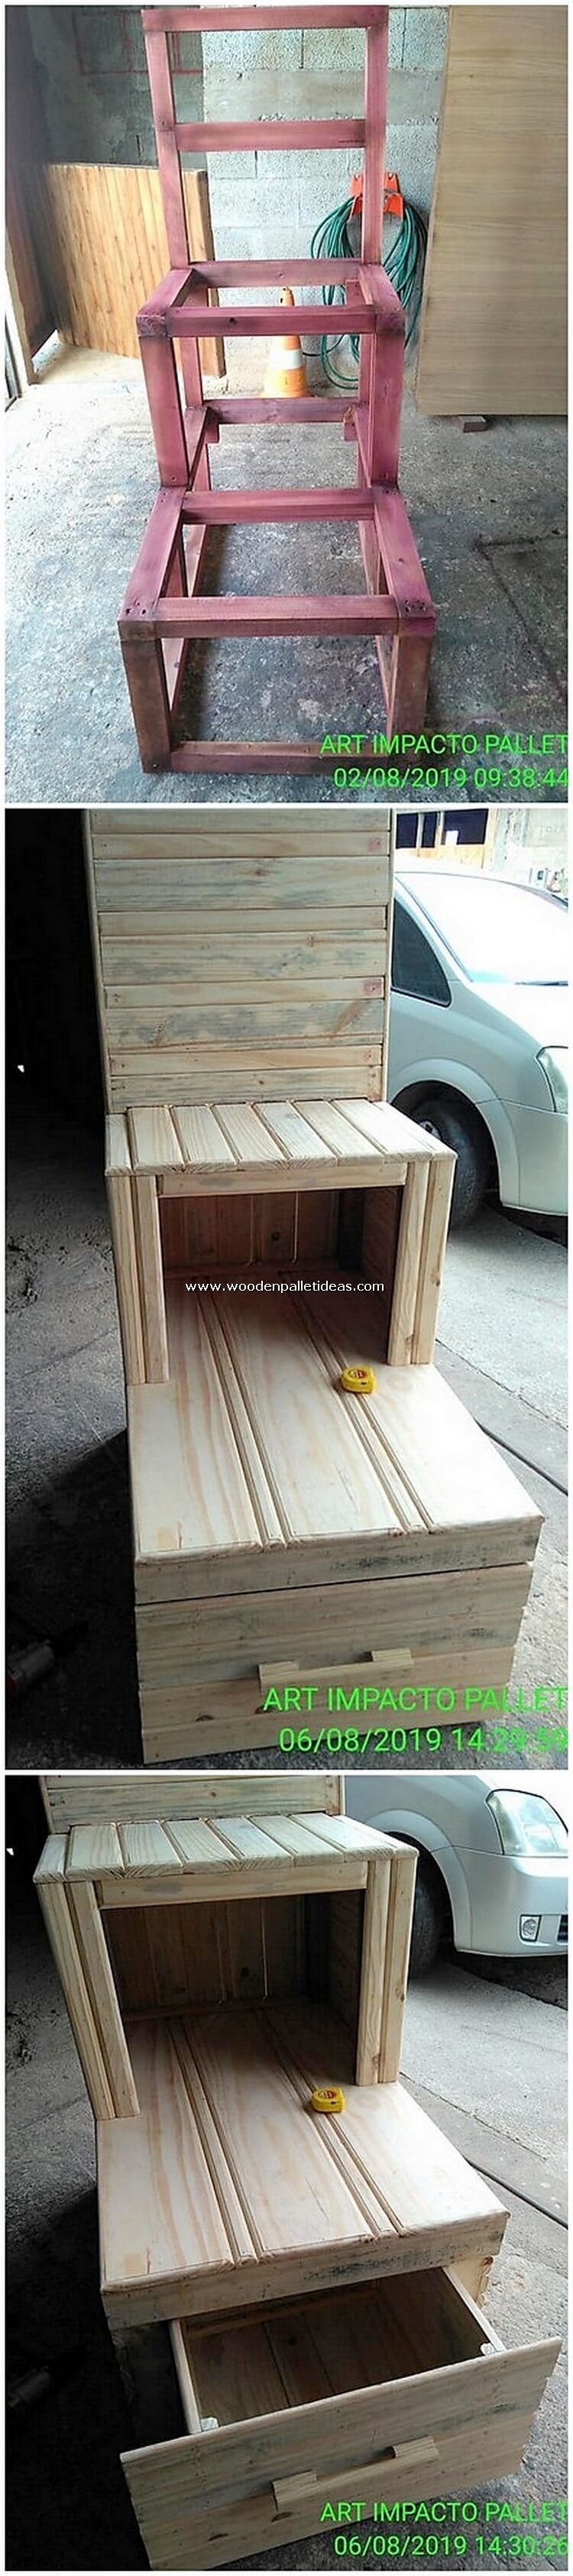 Pallet-Side-Table-with-Drawers-1